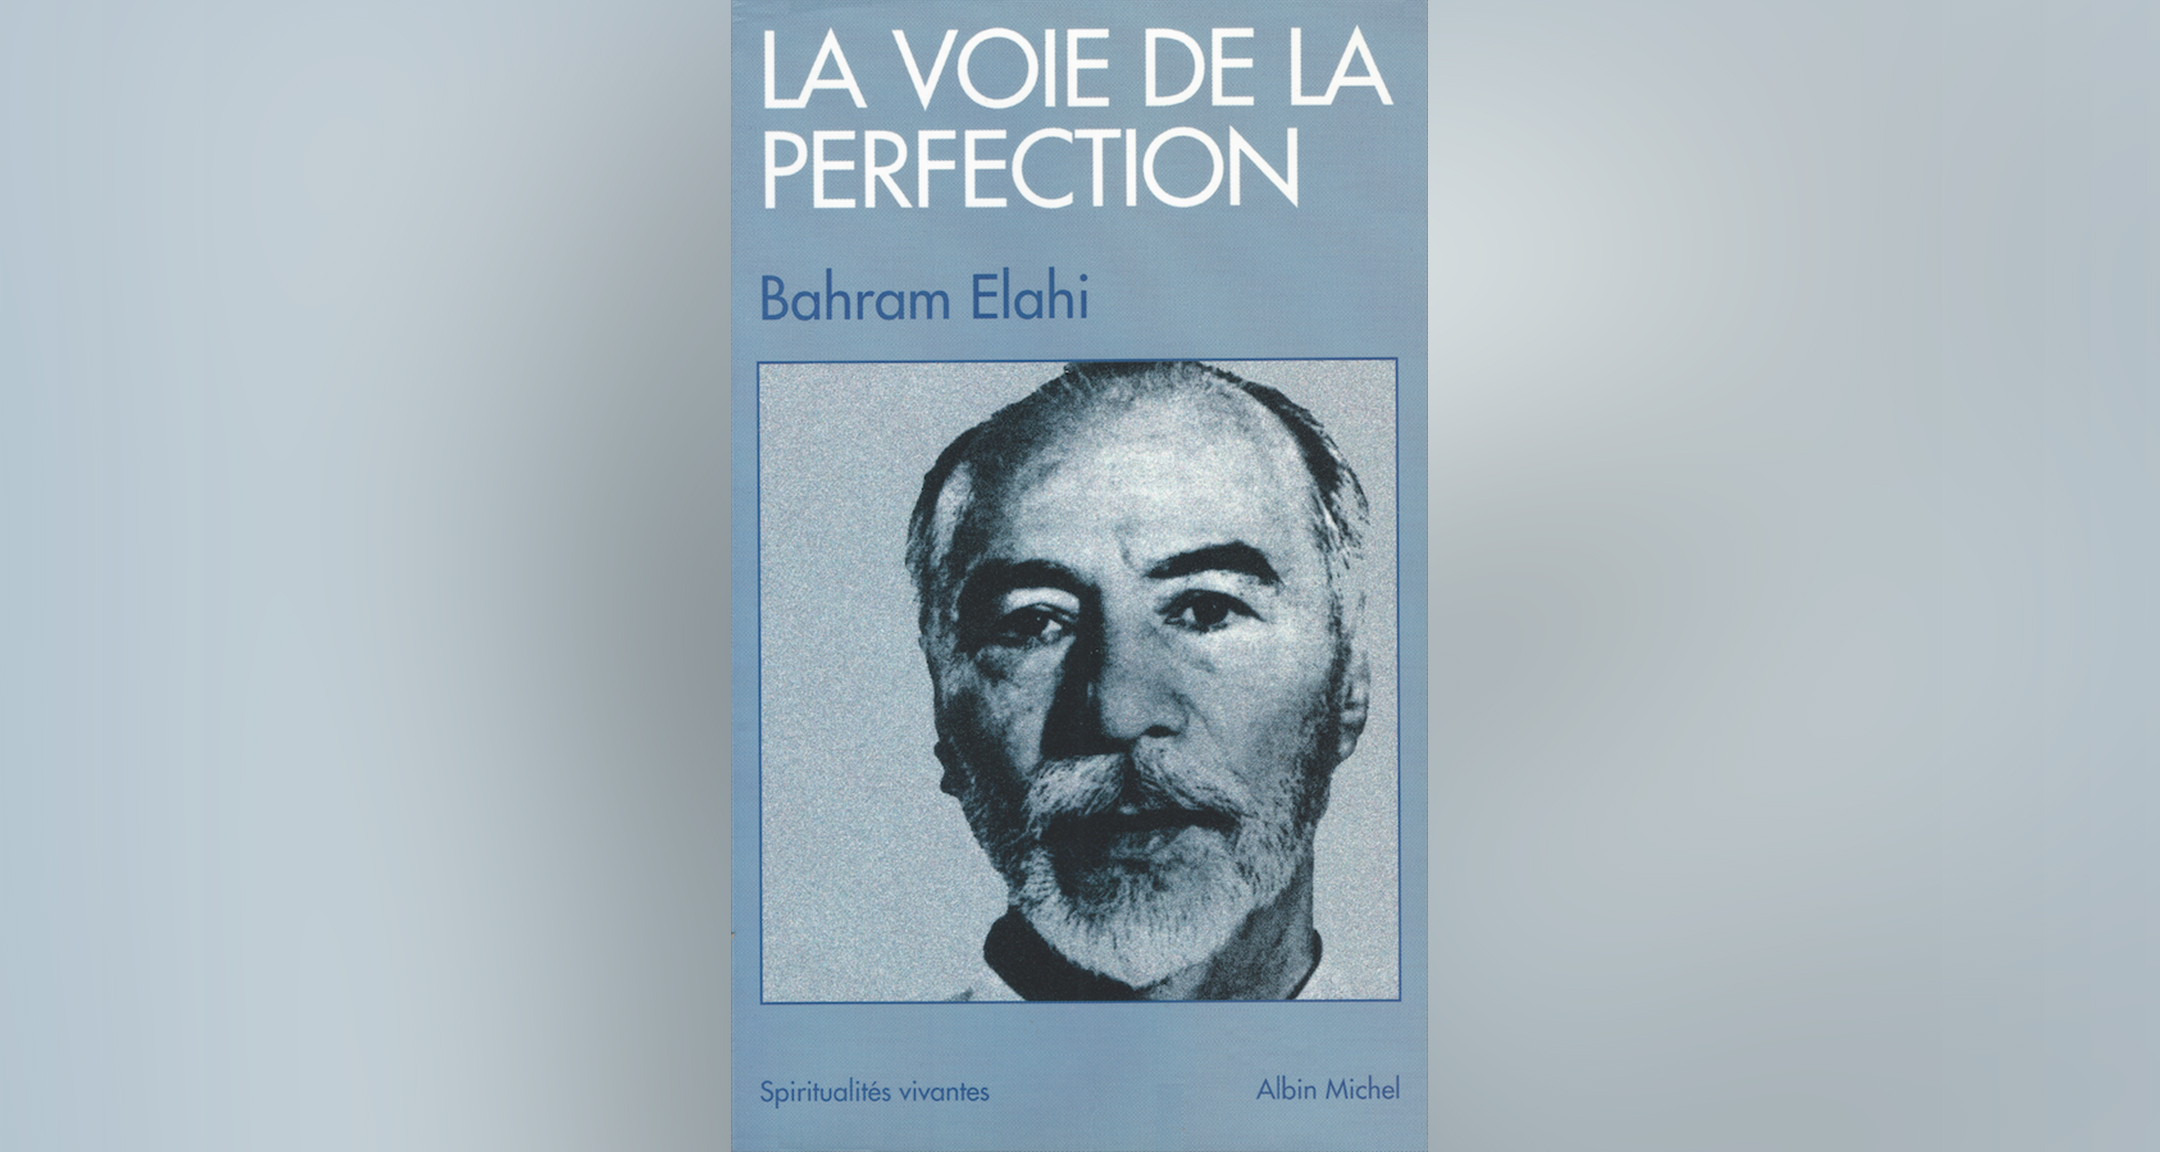 La Voie de la Perfection, Bahram Elahi